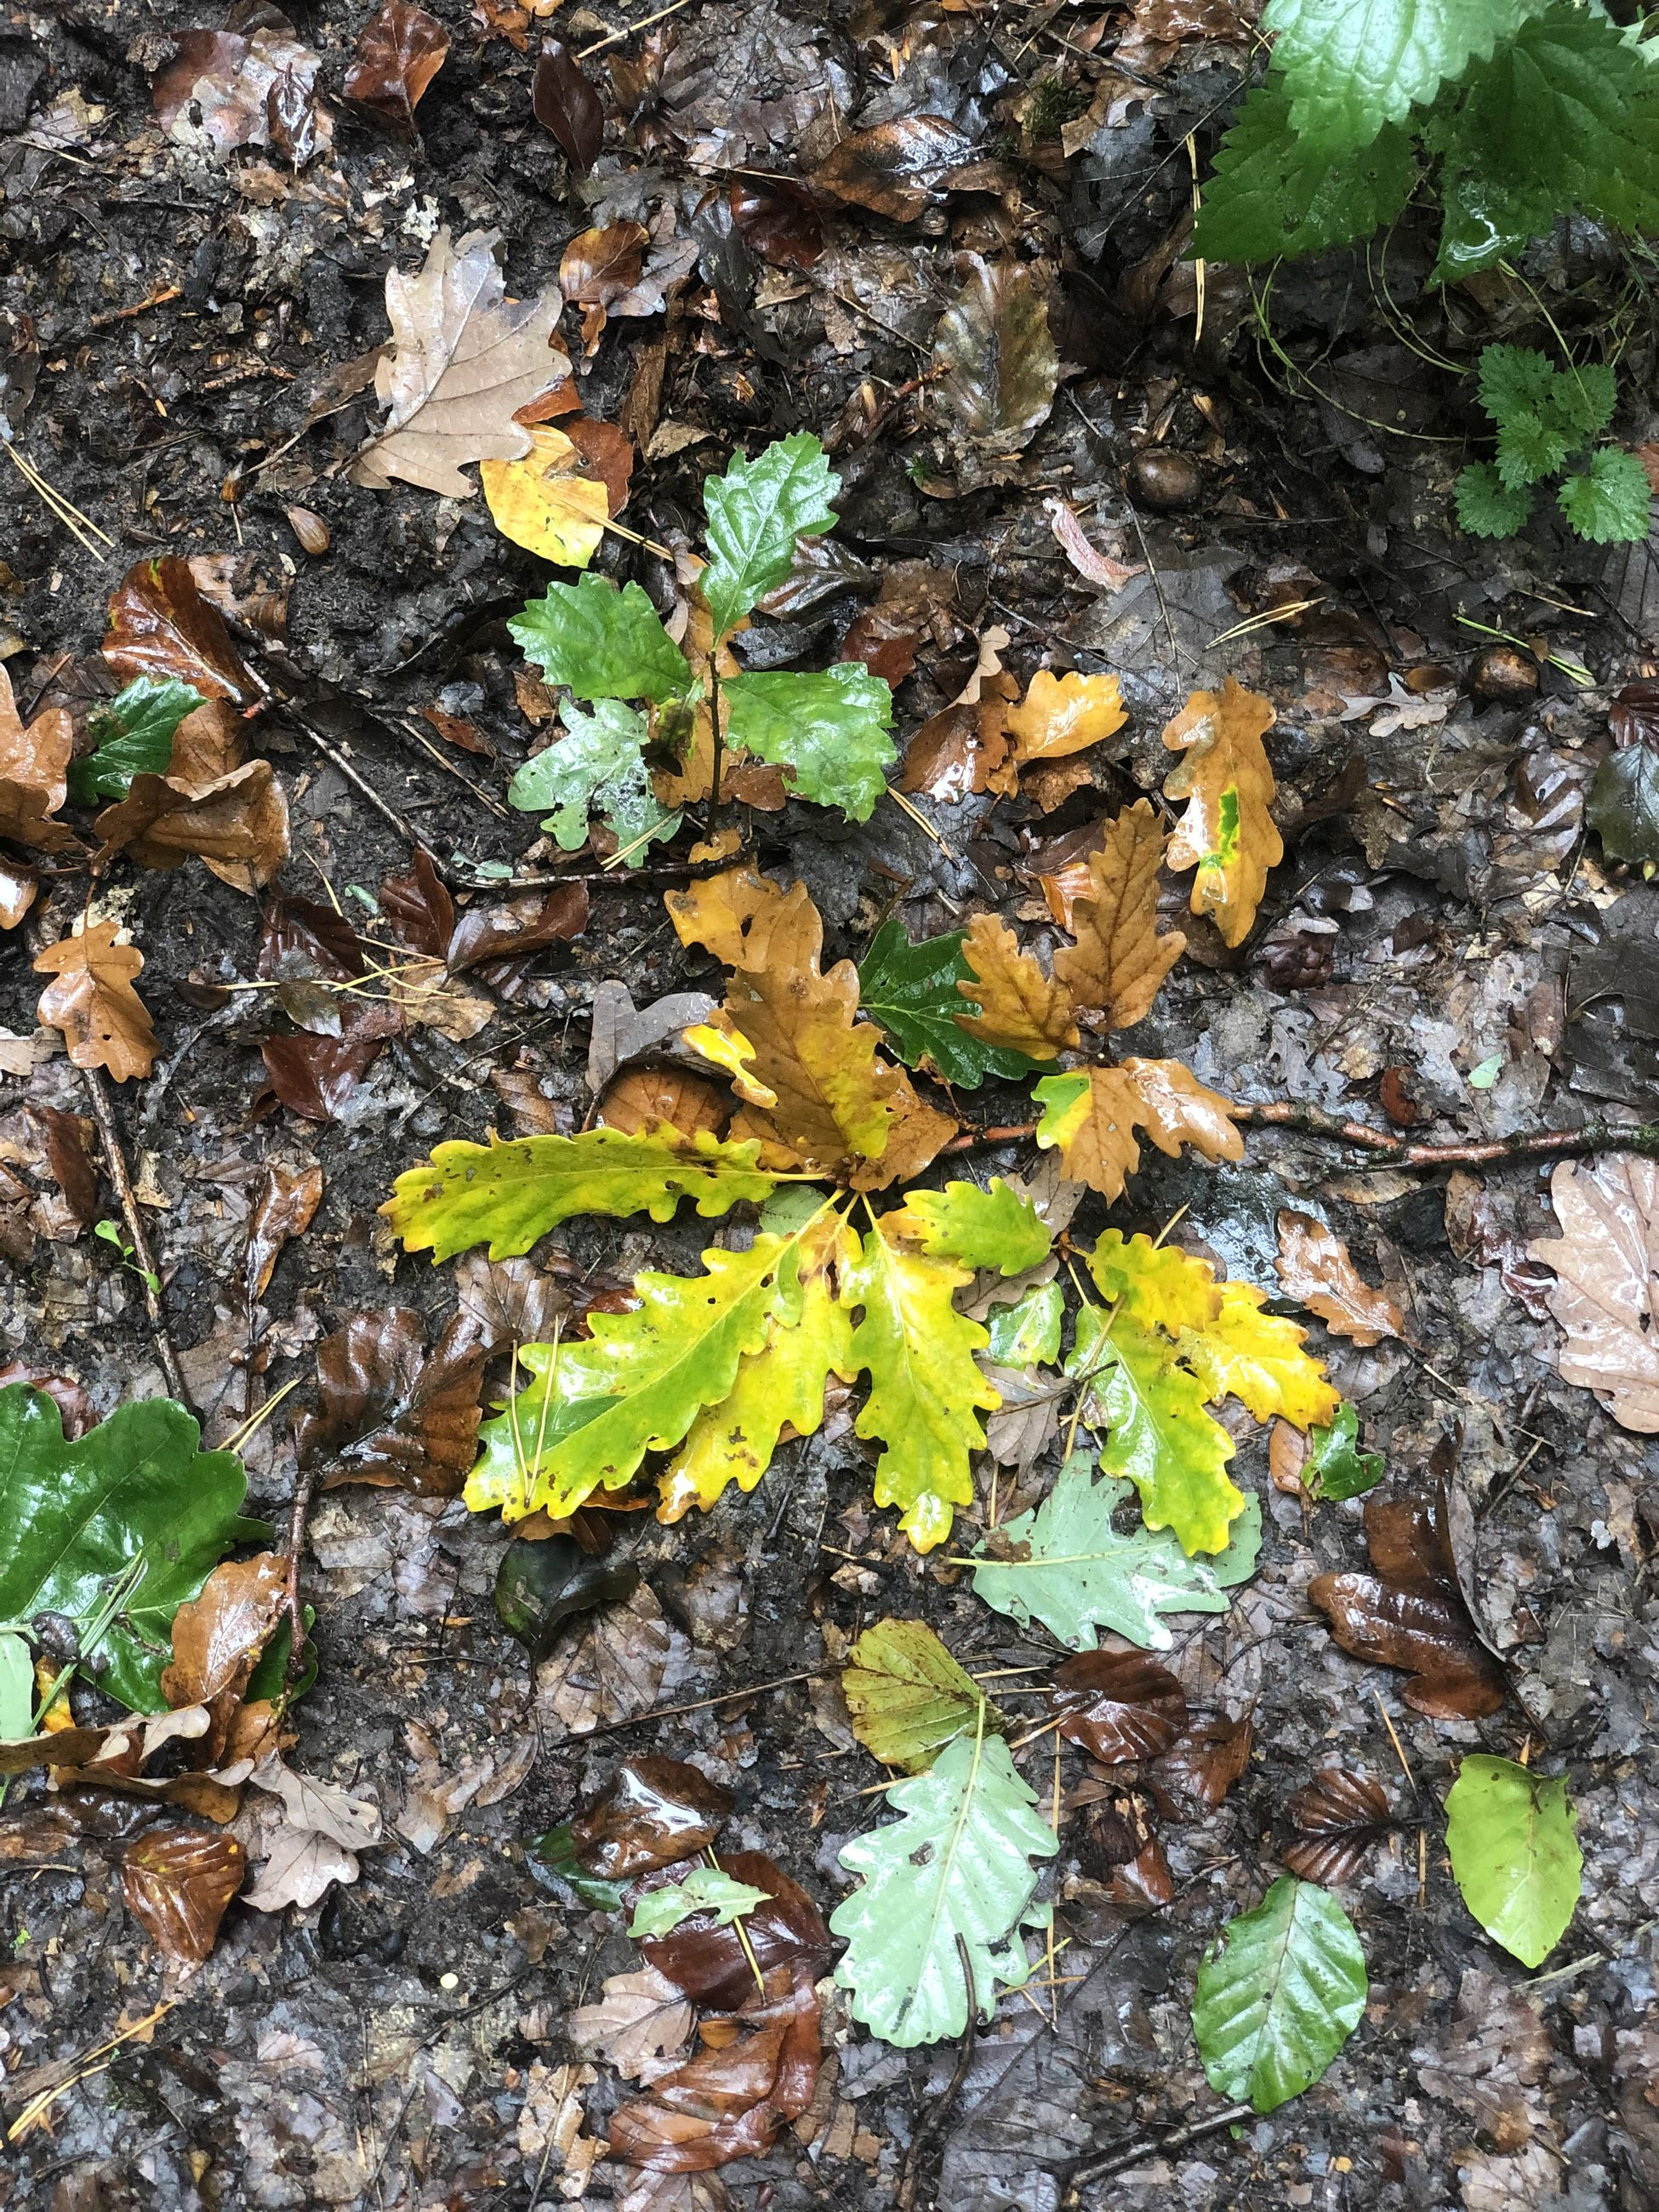 leaf, plant part, nature, day, plant, land, growth, field, no people, leaves, beauty in nature, high angle view, close-up, autumn, outdoors, dry, change, falling, vulnerability, tranquility, maple leaf, natural condition